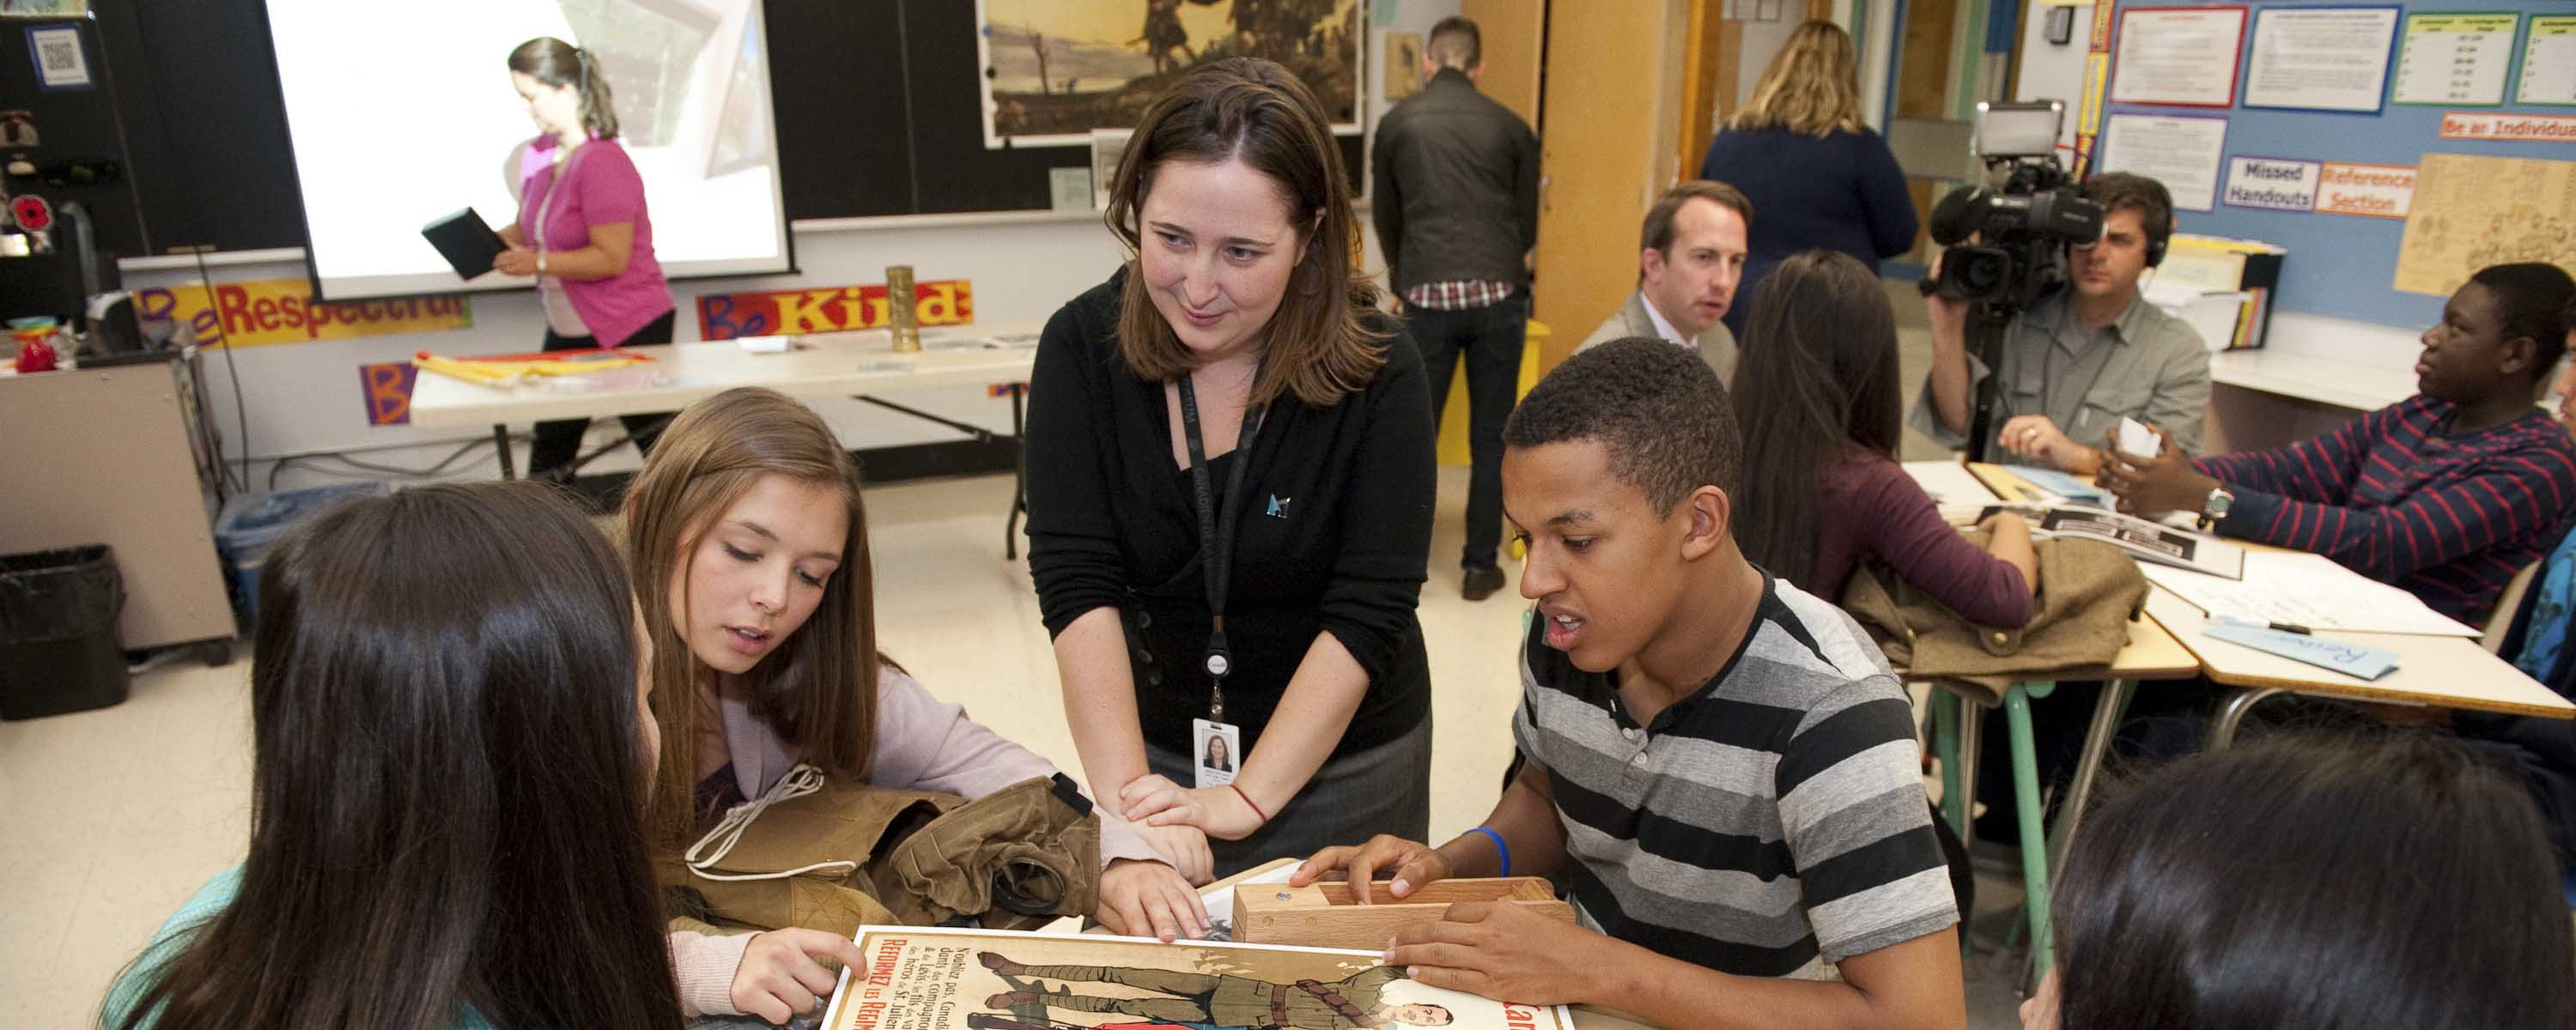 Slide - First World War Discovery Box program lets students touch the First World War